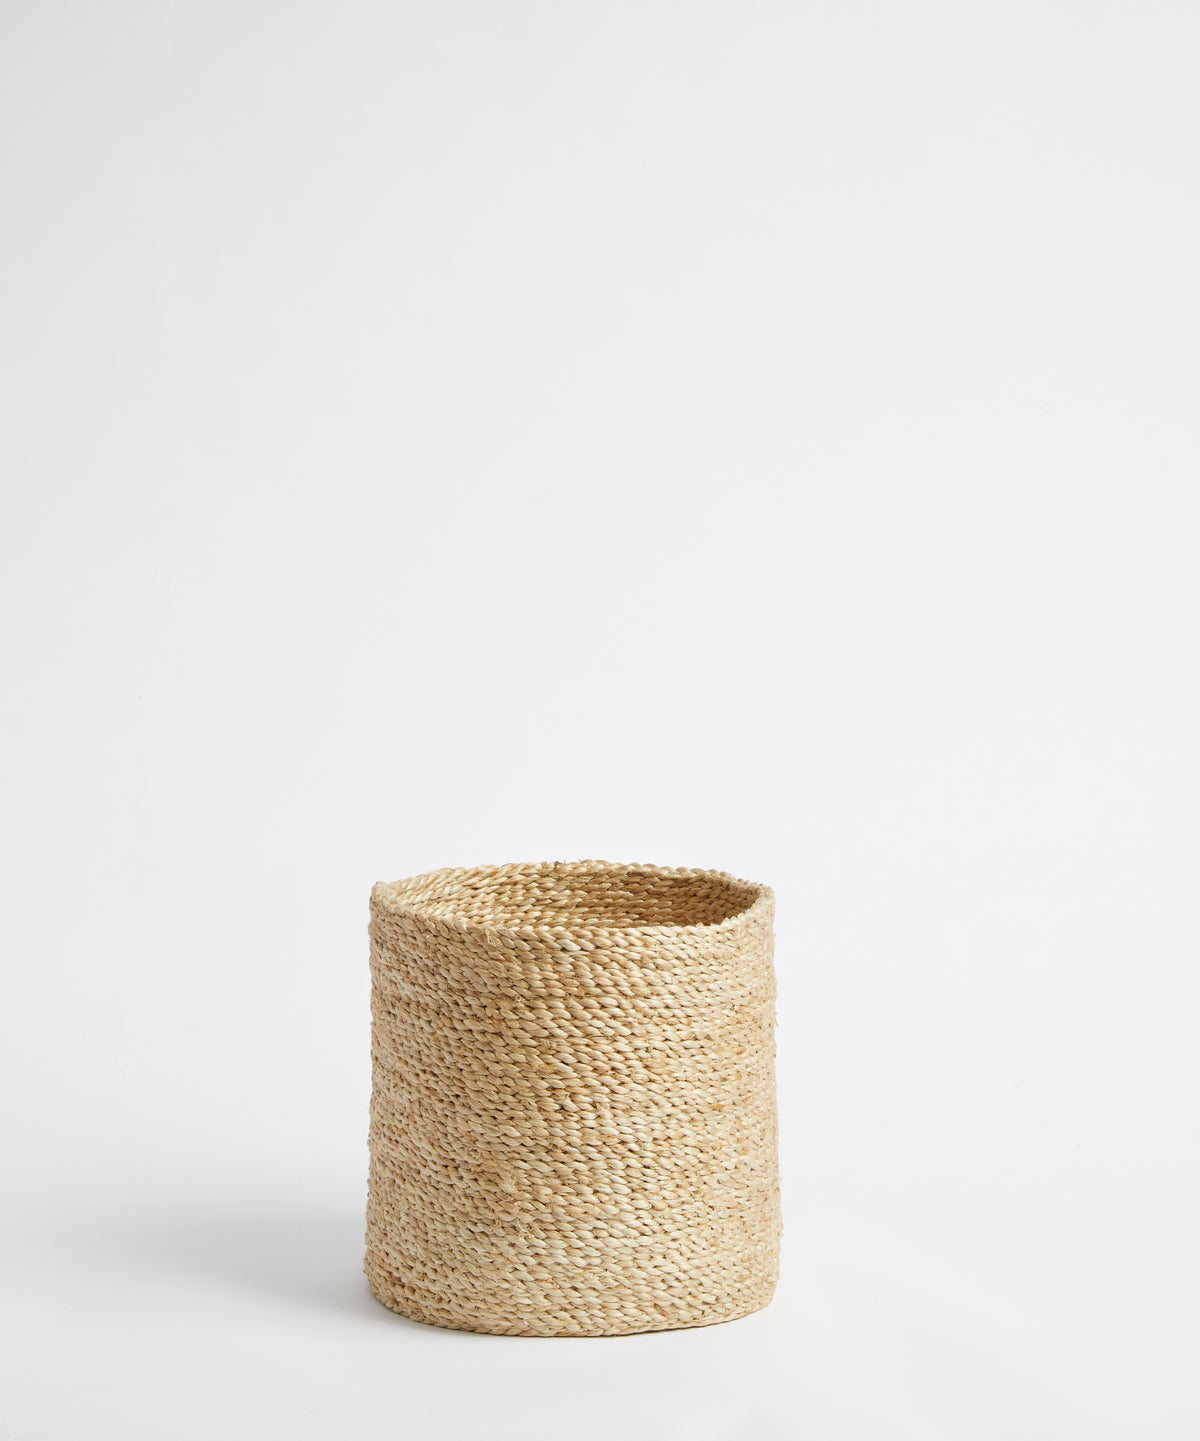 Small Handwoven Jute Basket